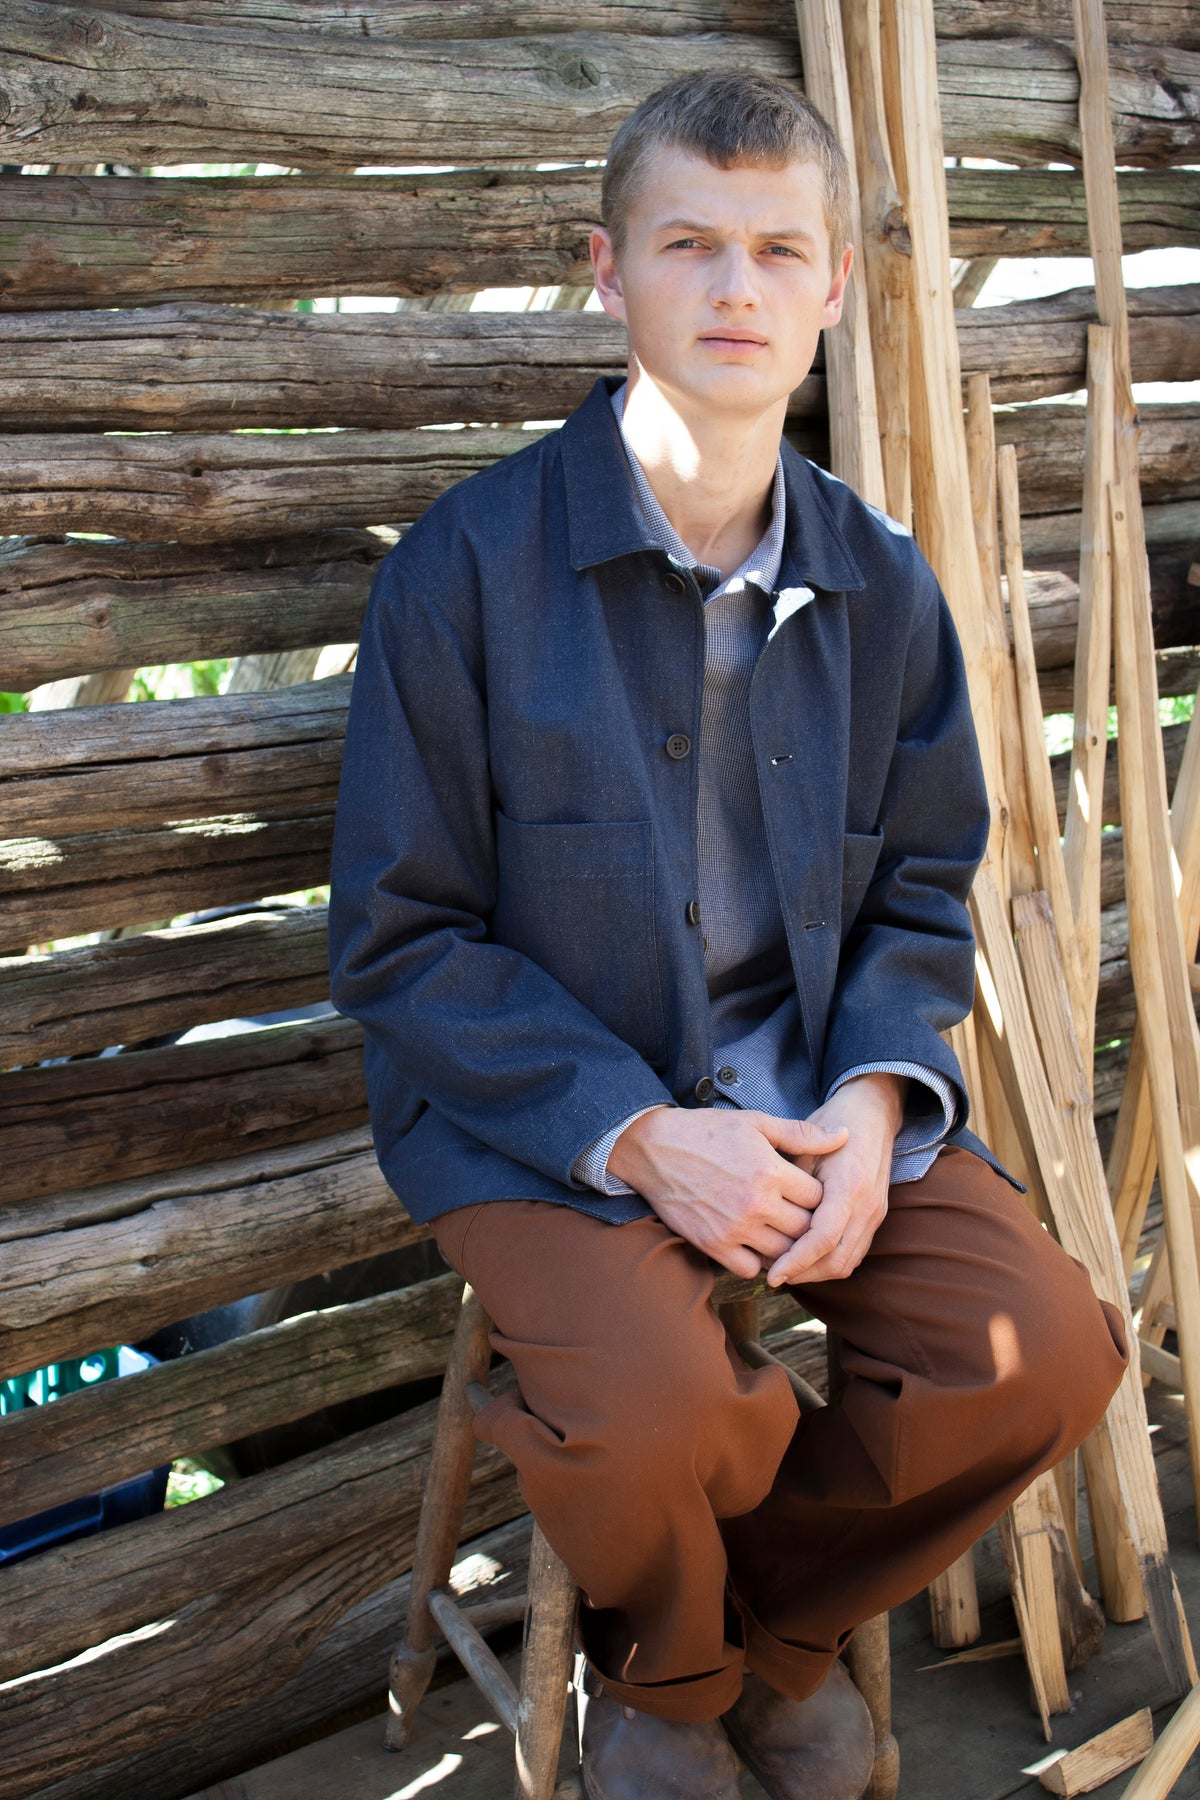 Young man sitting on a stool outside on a sunny day, he is sitting against a wooden wall, and next to some striped wooden poles, he is looking straight at the camera and is wearing a pair of brown trousers and a simple denim workwear jacket